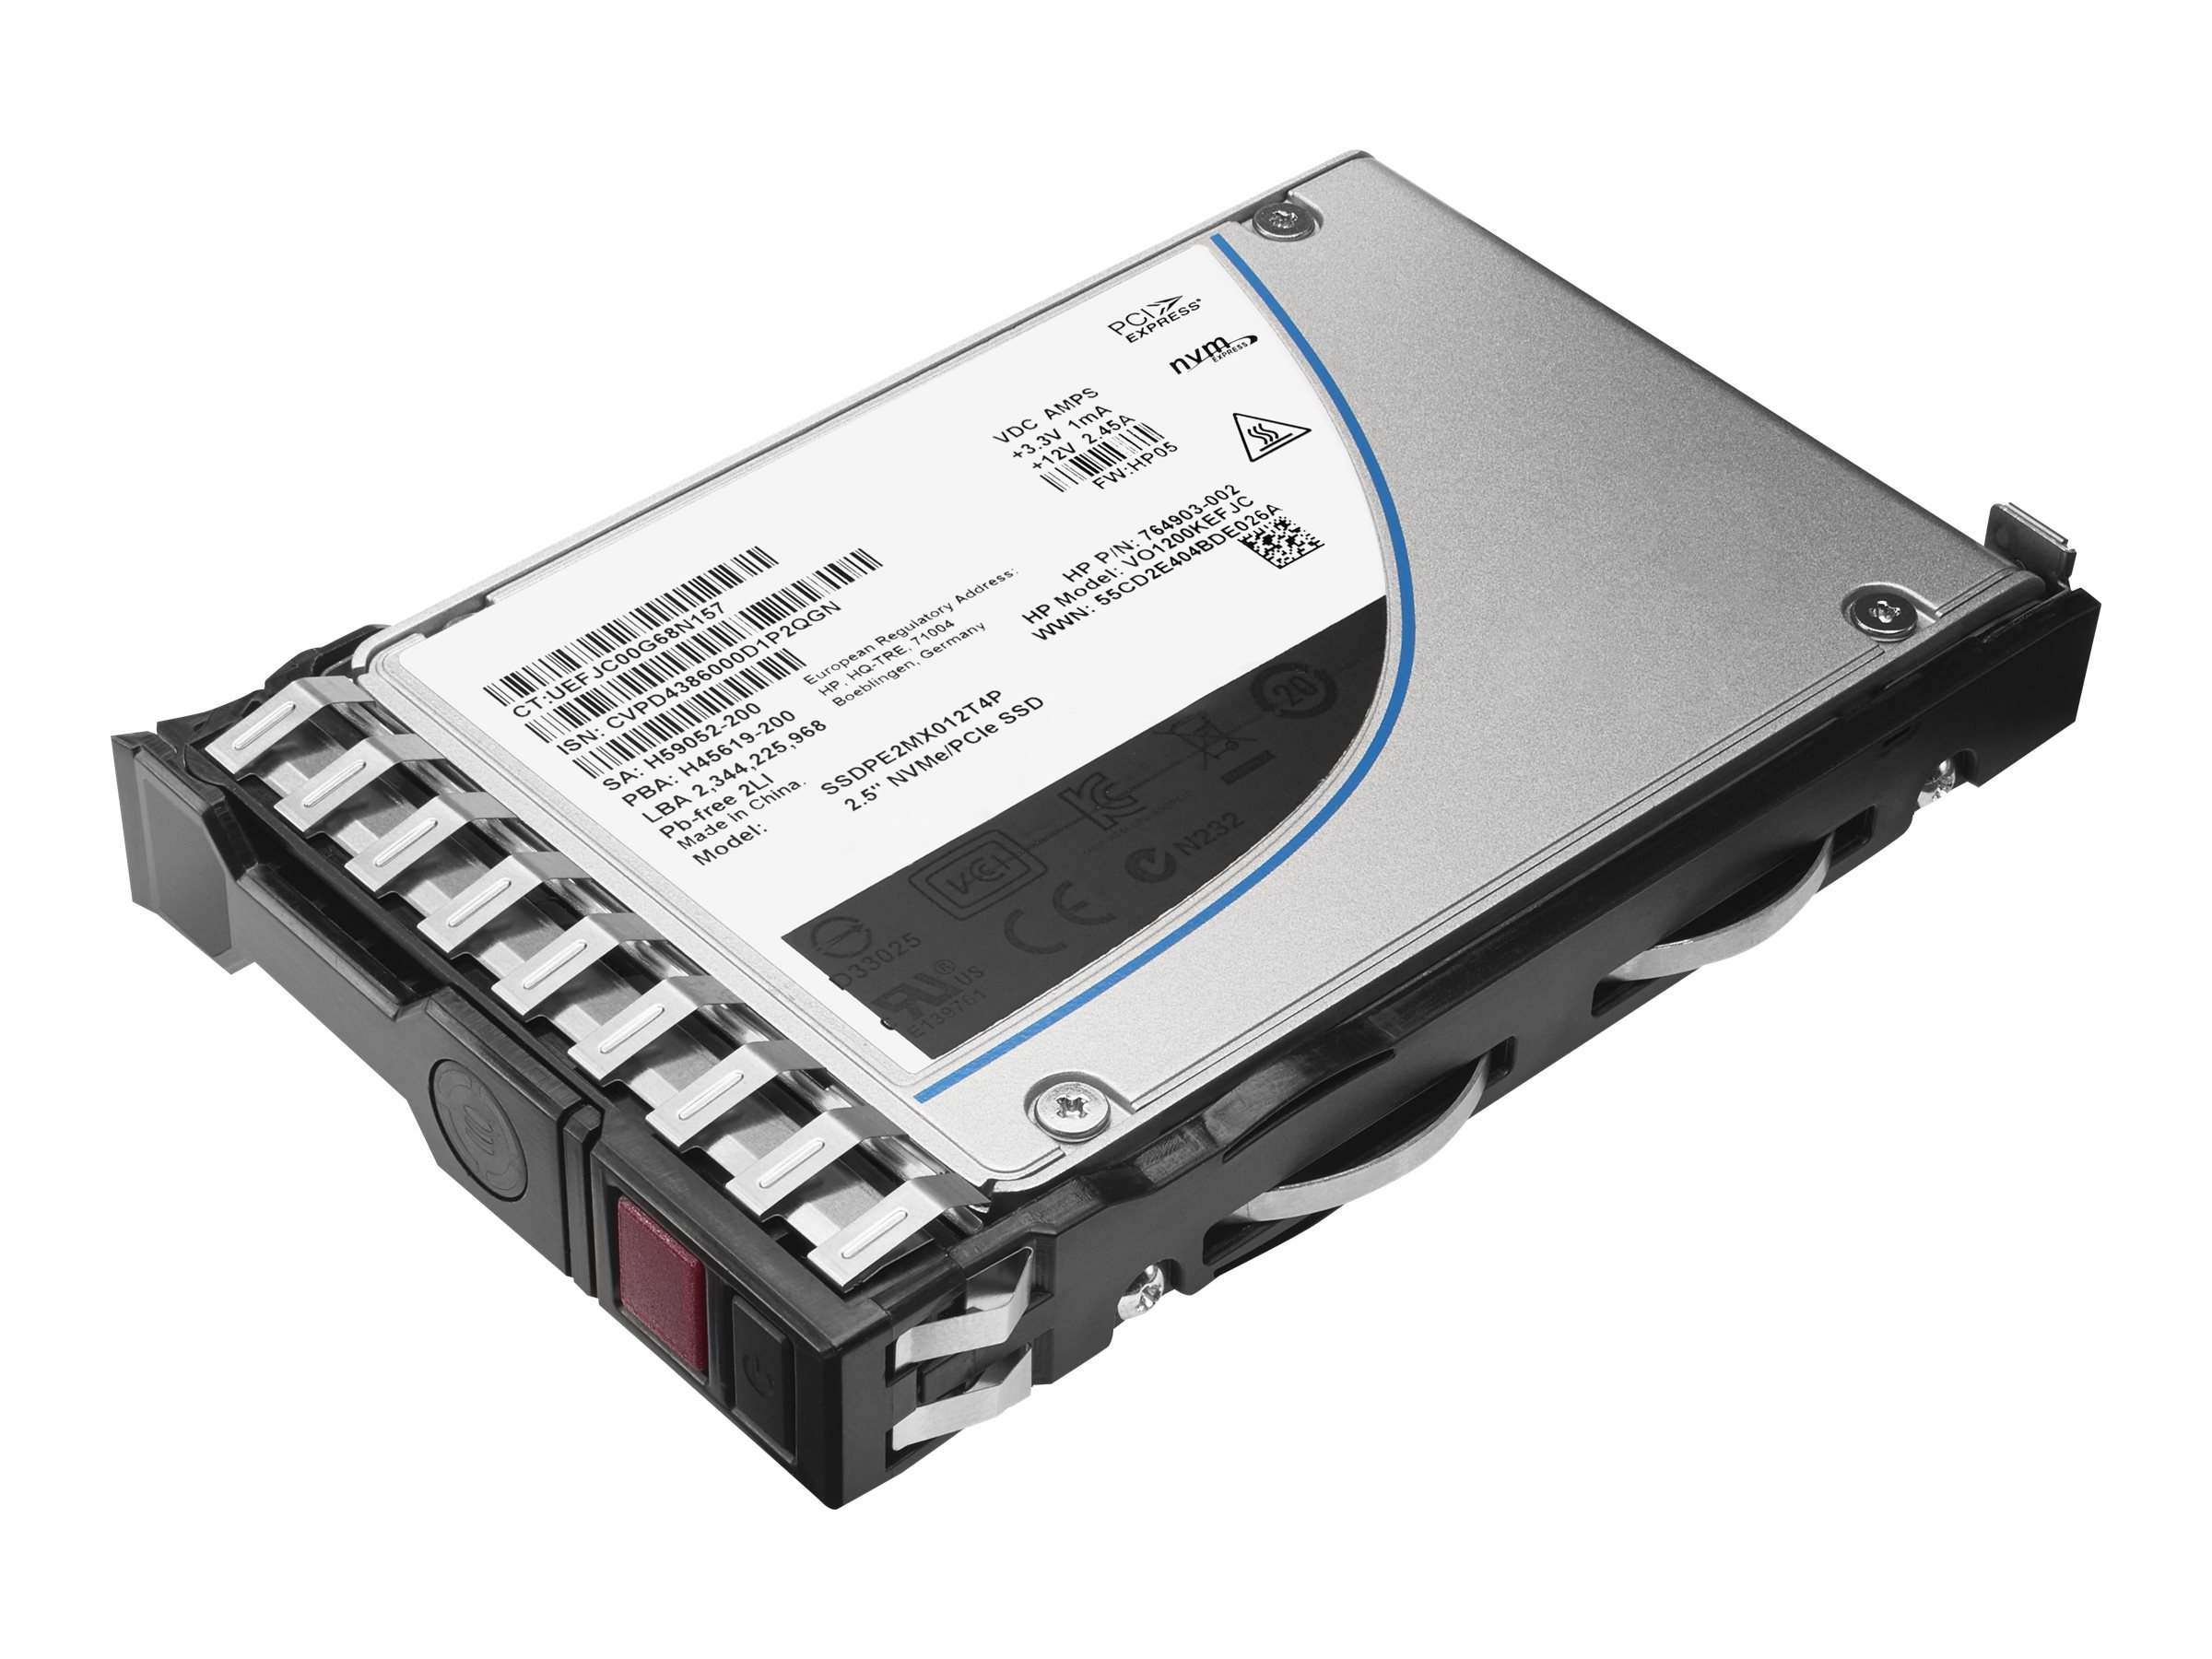 HPE 120GB SATA 6Gb s Read Intensive-3 SFF 2.5 Smart Carrier Solid State Drive, 816879-B21